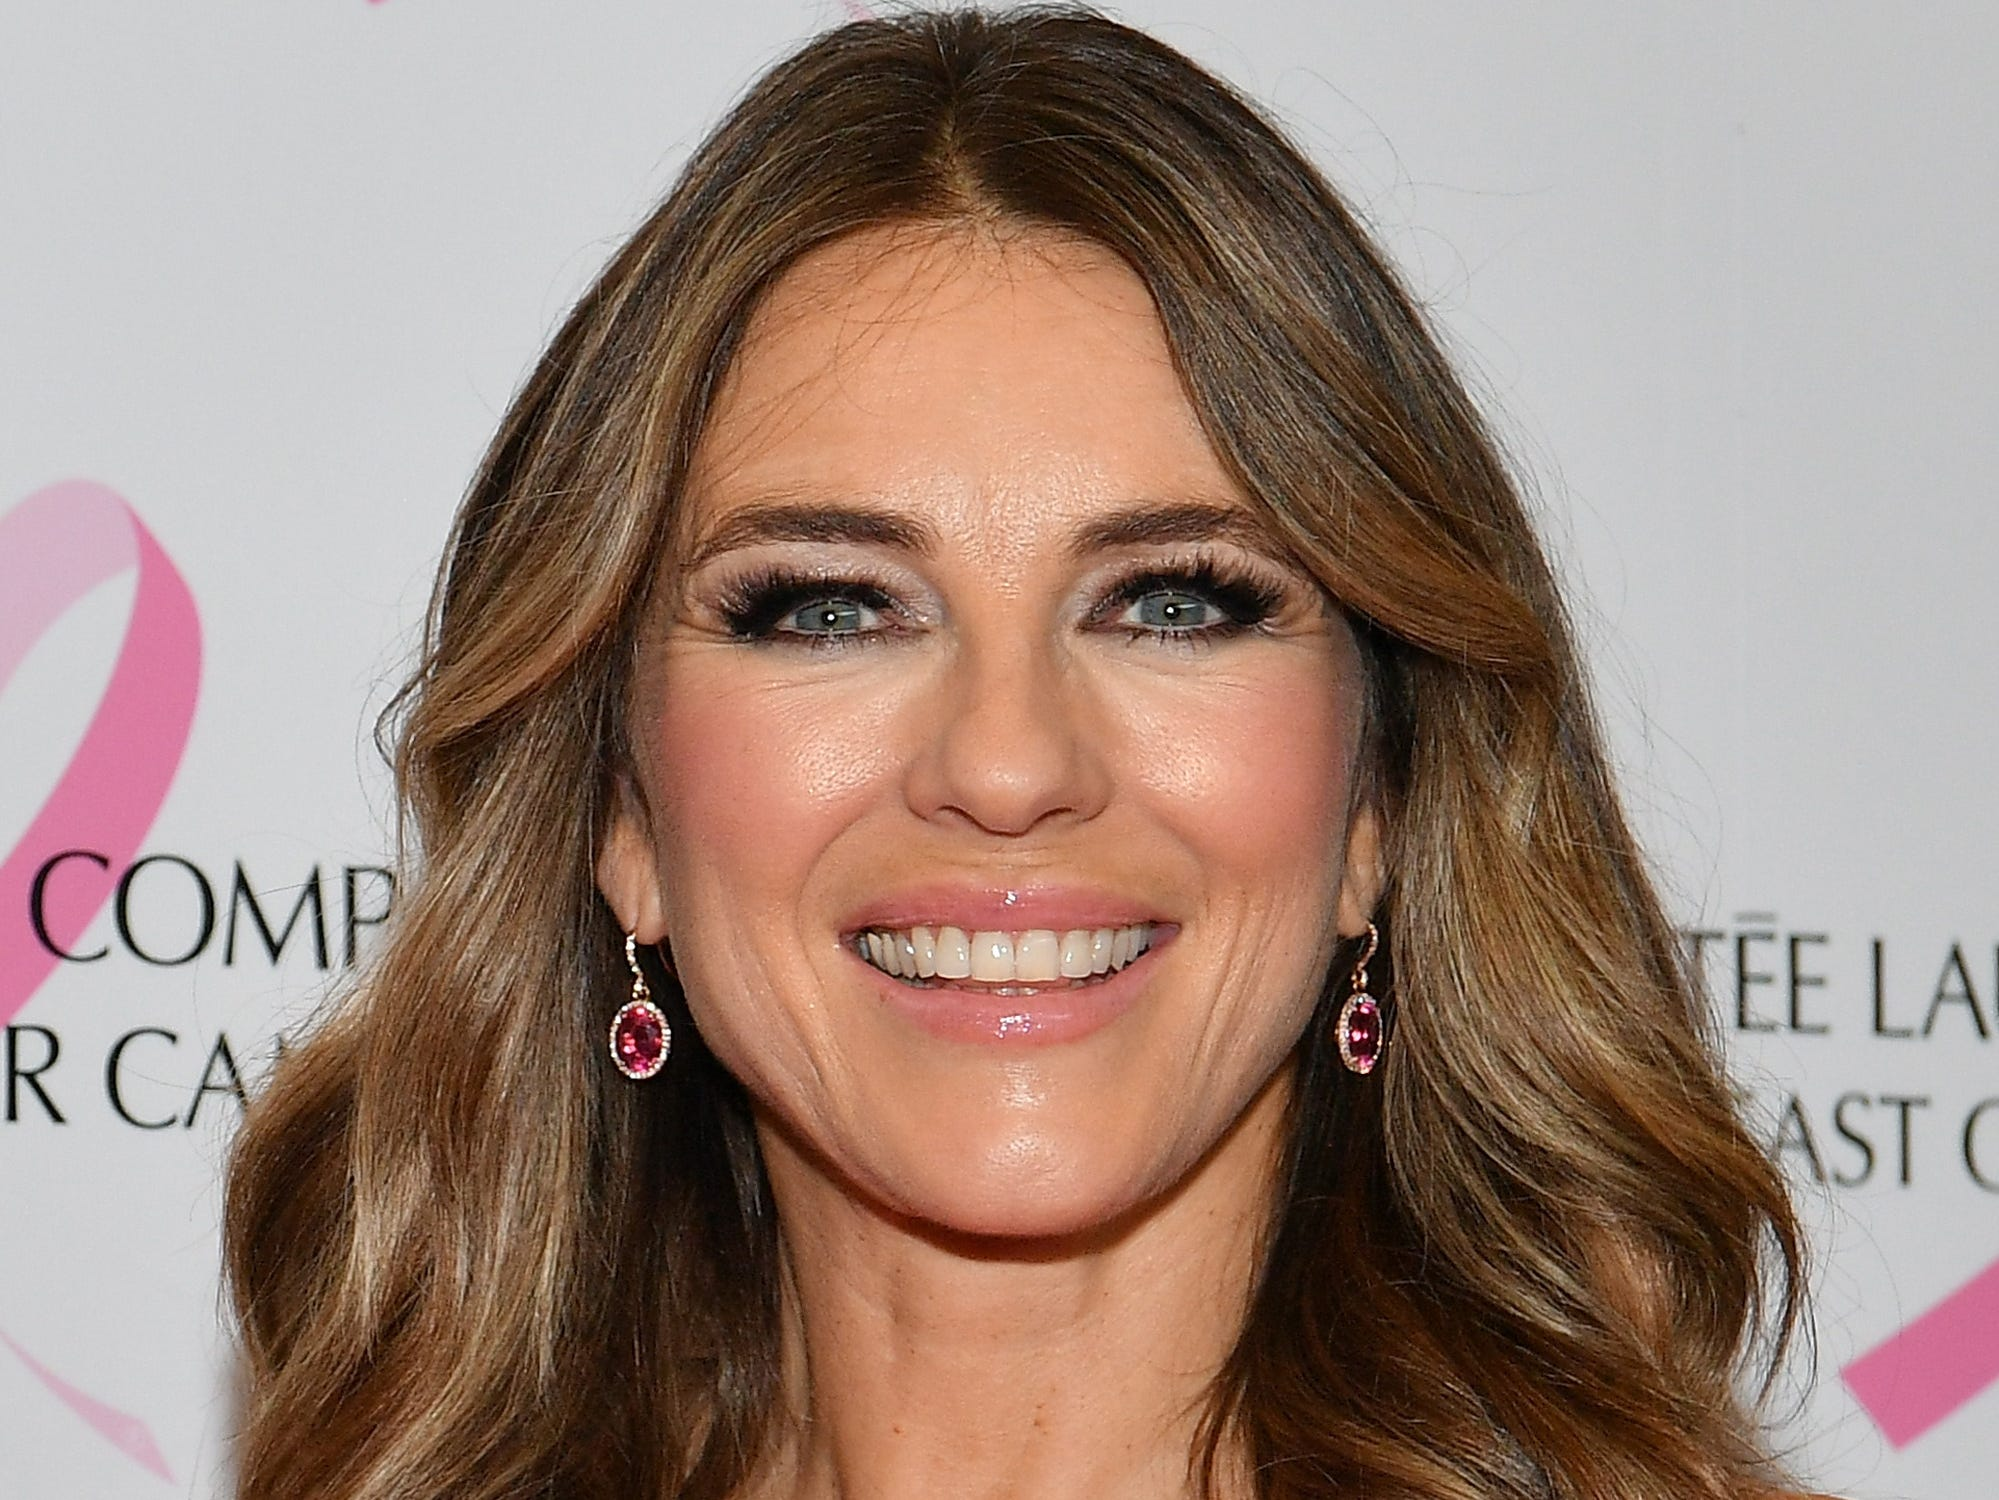 NEW YORK, NEW YORK - OCTOBER 01: Elizabeth Hurley attends the Estée Lauder 2018 Breast Cancer Campaign at Bar SixtyFive on October 01, 2018 in New York City. (Photo by Dia Dipasupil/Getty Images) ORG XMIT: 775235304 ORIG FILE ID: 1047871812